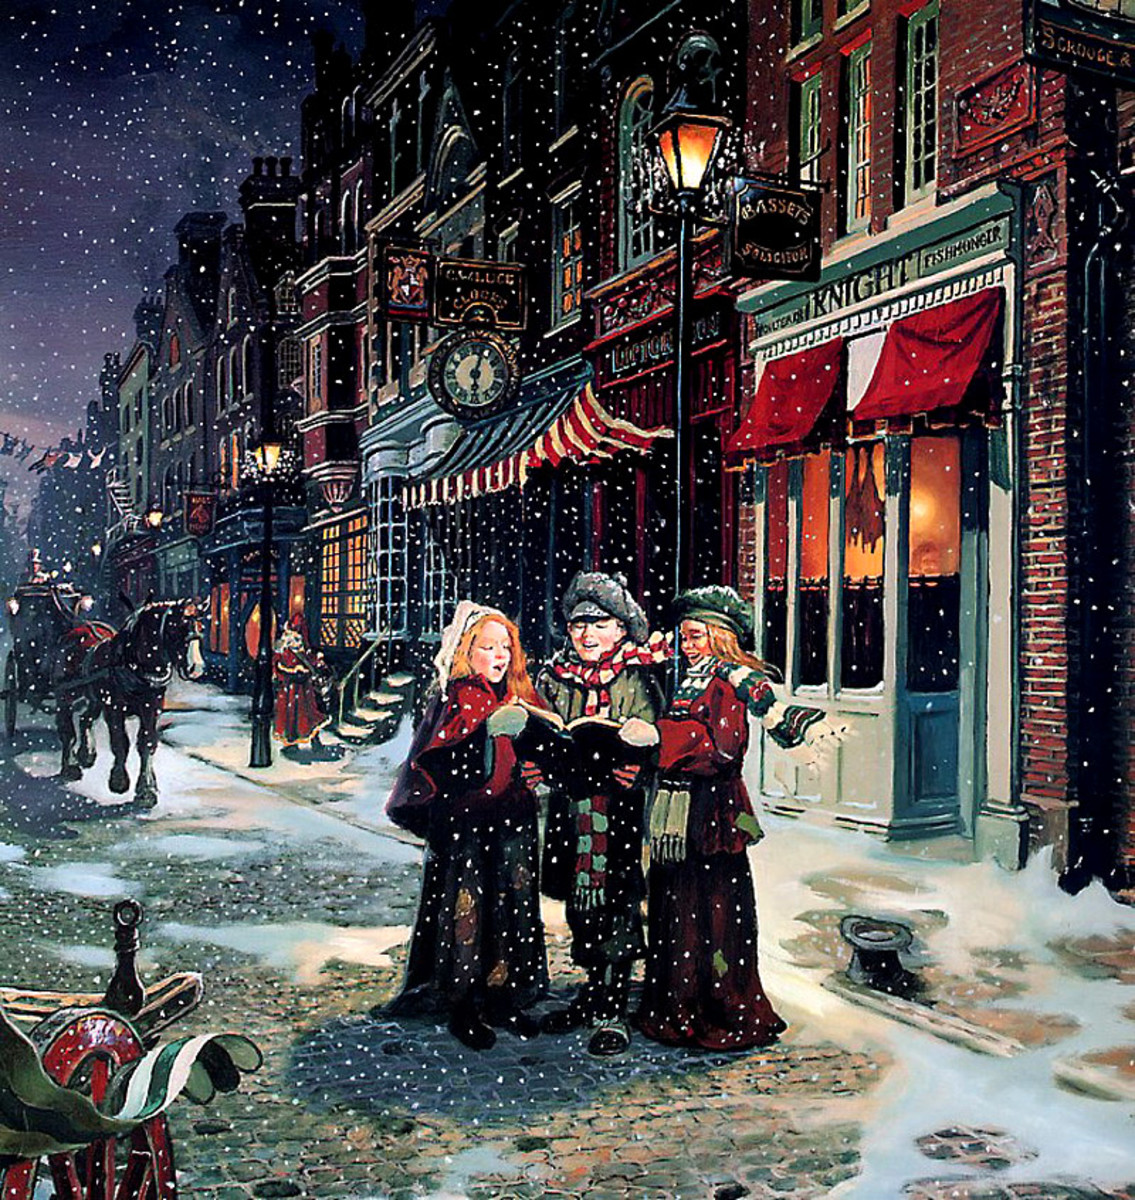 1000 Images About A Christmas Carol On Pinterest: 30 Favourite Christmas Carols